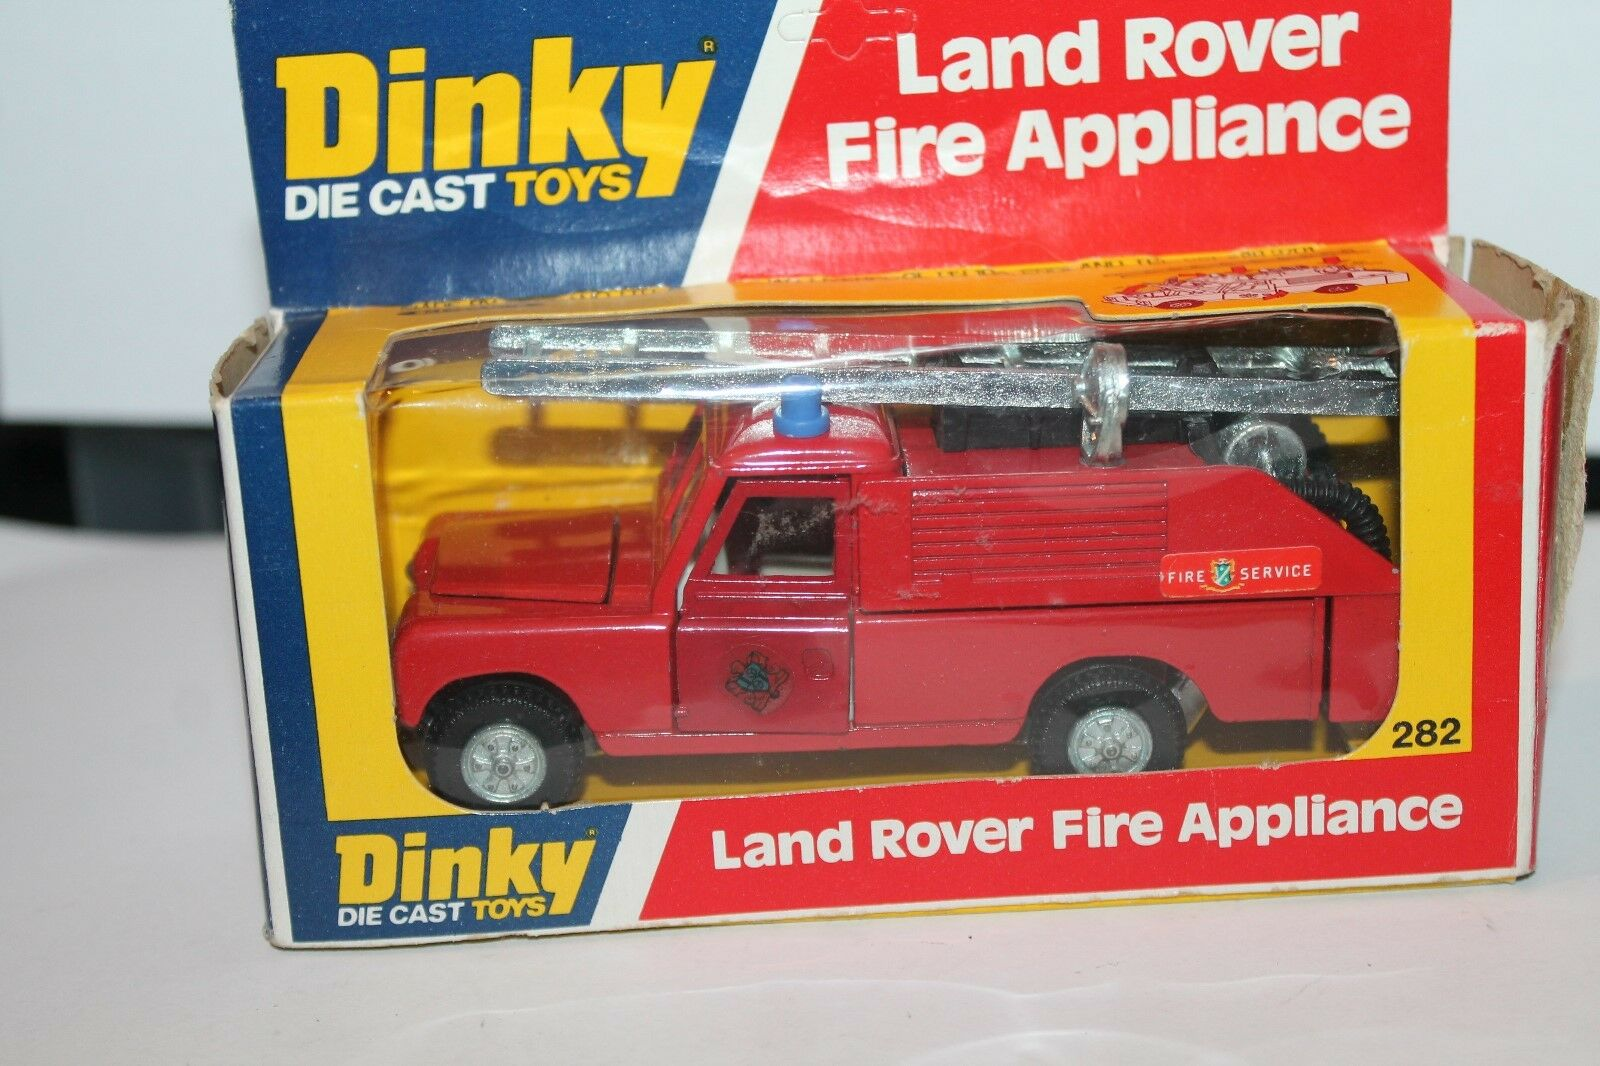 DINKY toys 282  Land rover fire appliance  1 43  OVP